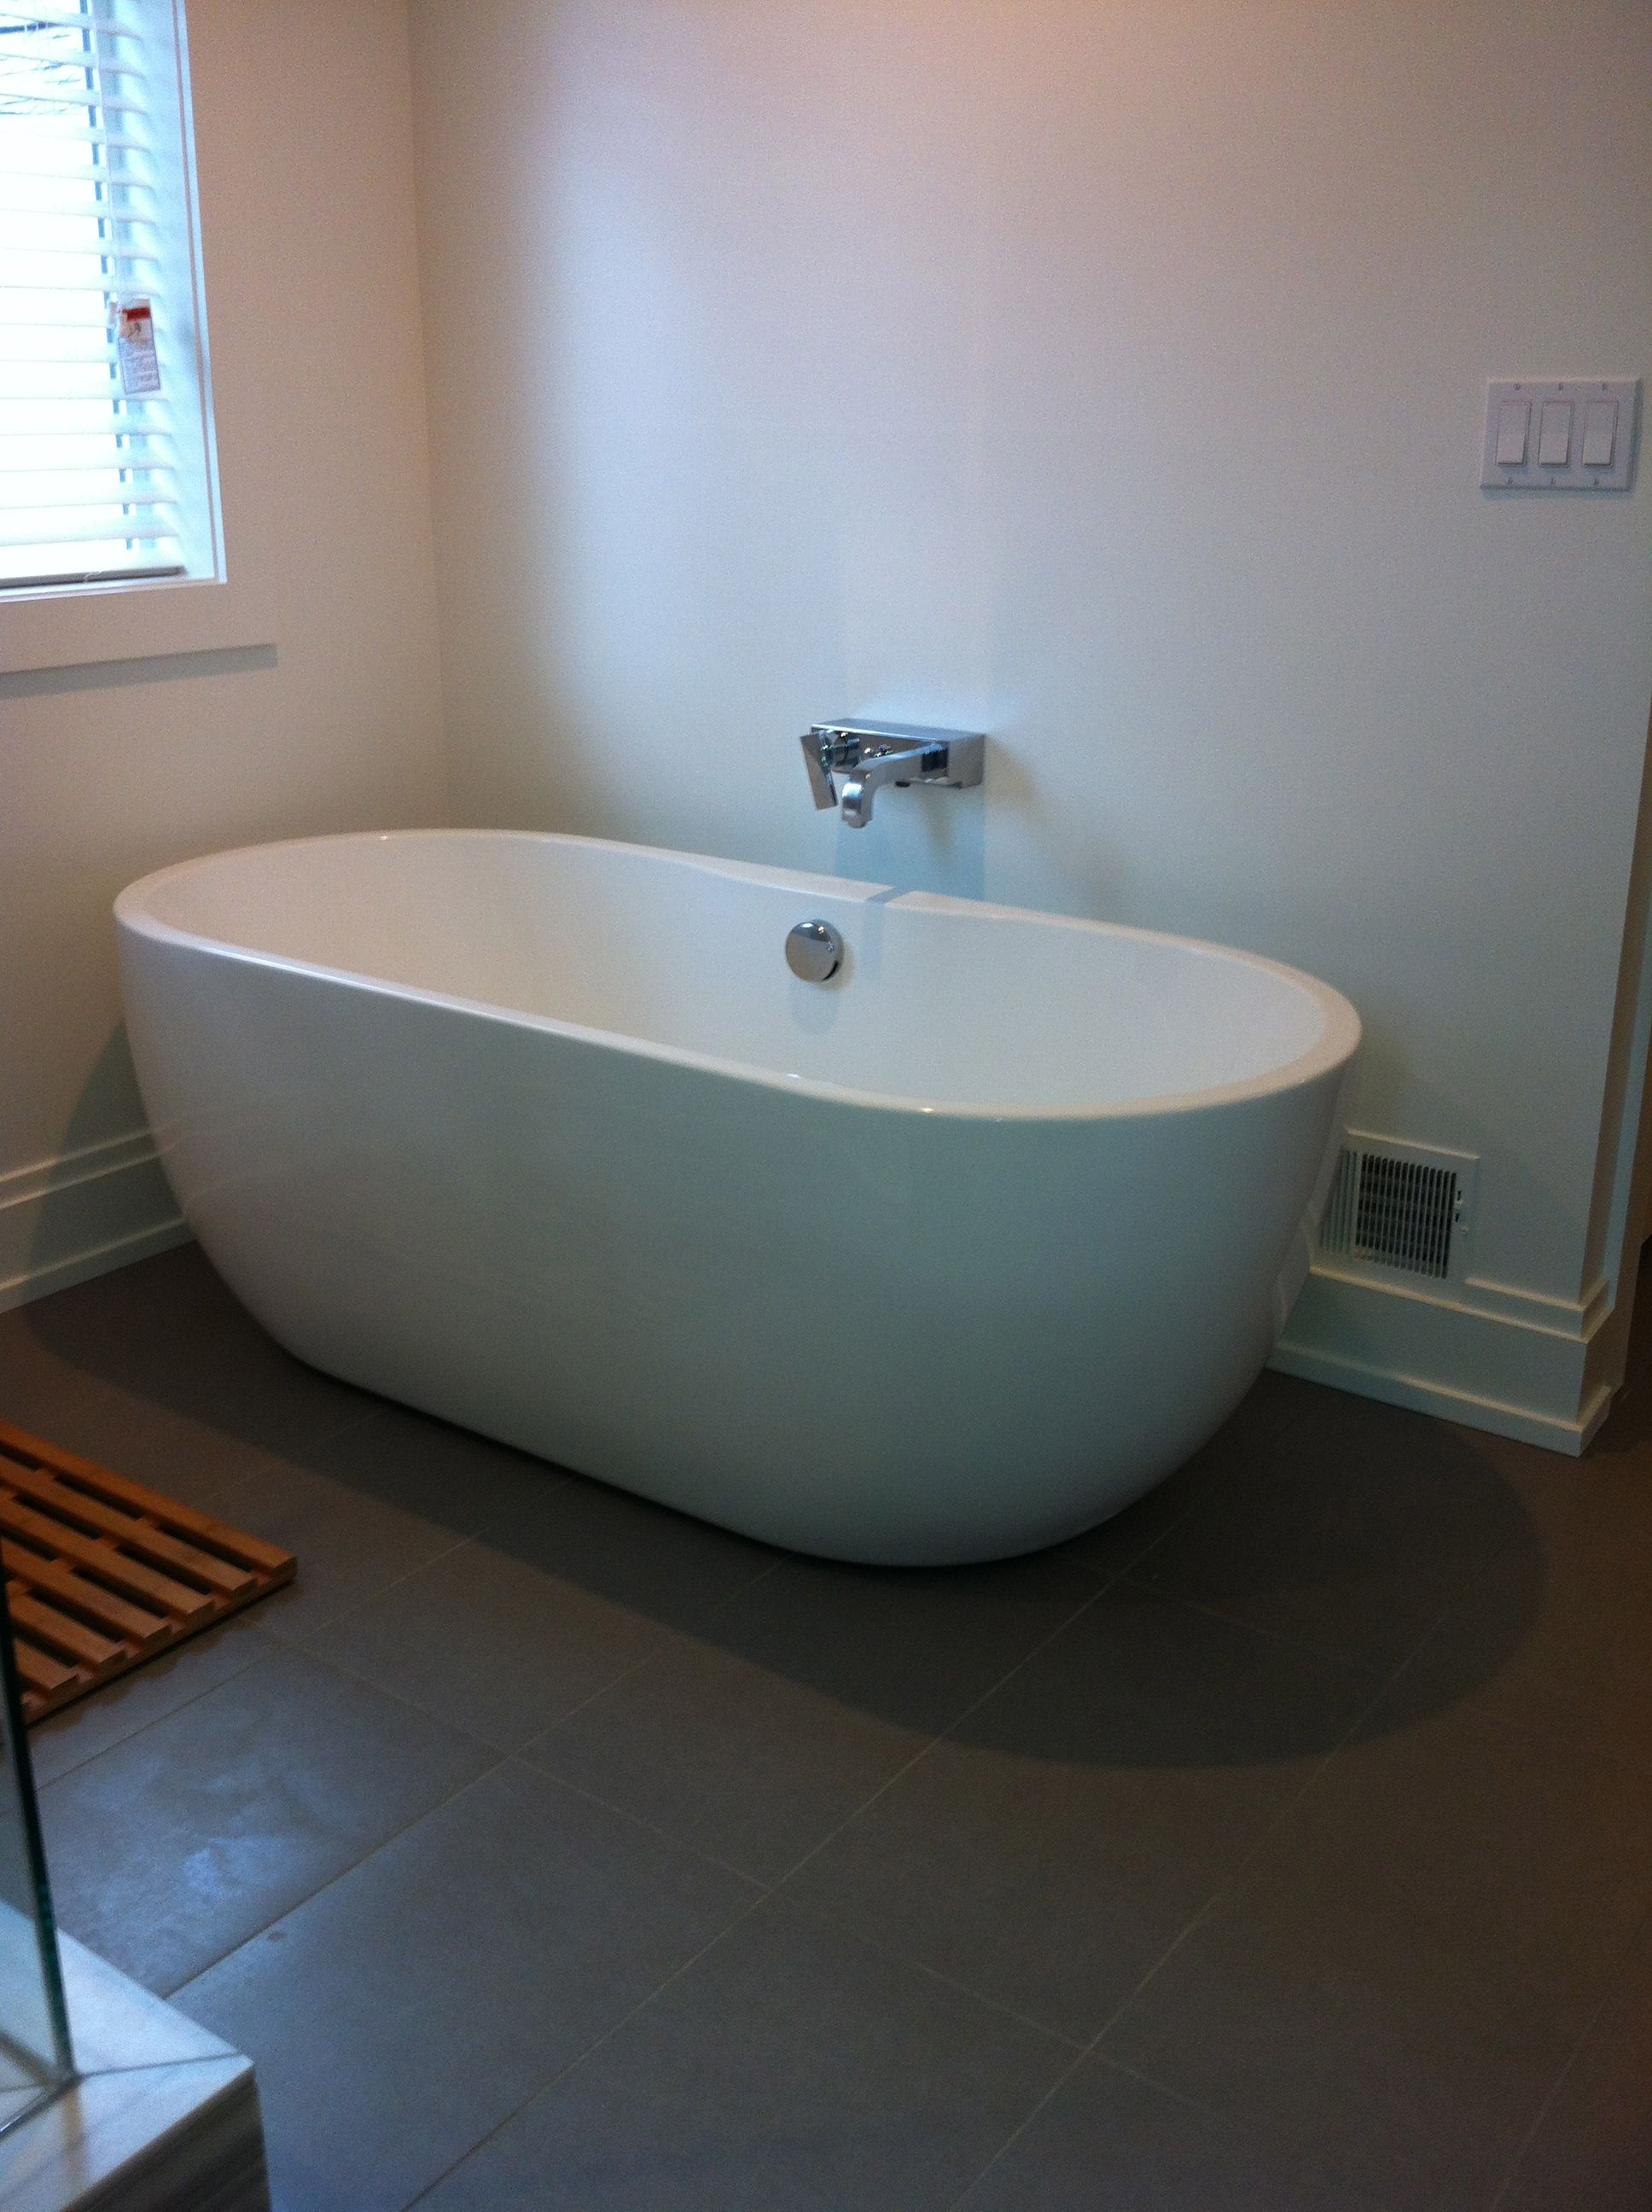 free standing tub, wall mount faucet | For the house | Pinterest ...